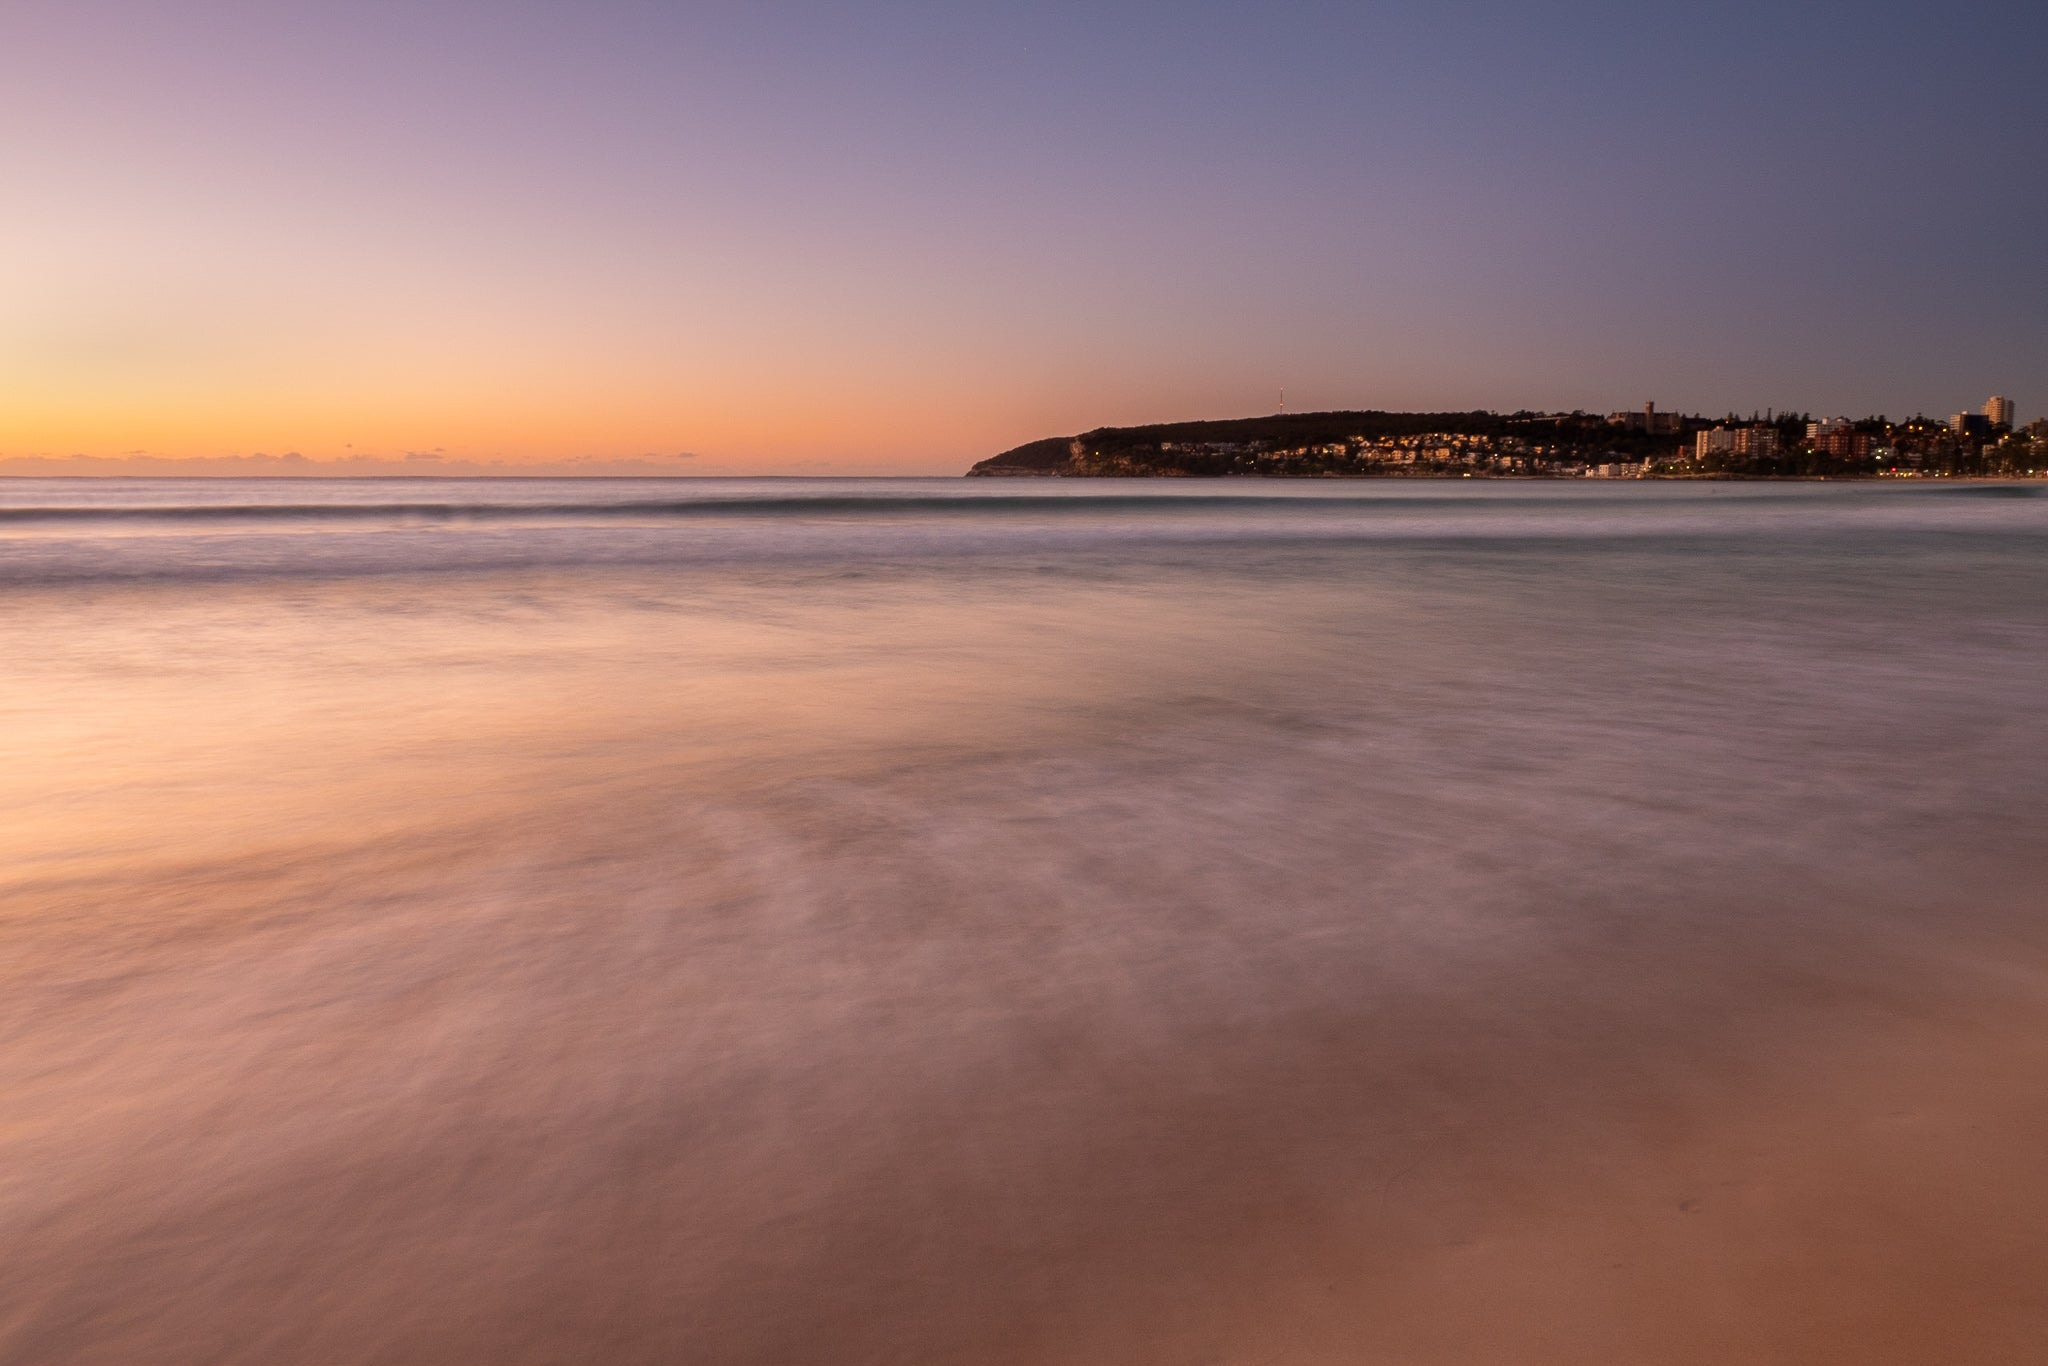 Sunrise photo from the 28th May 2019 at Queenscliff Beach in Sydney